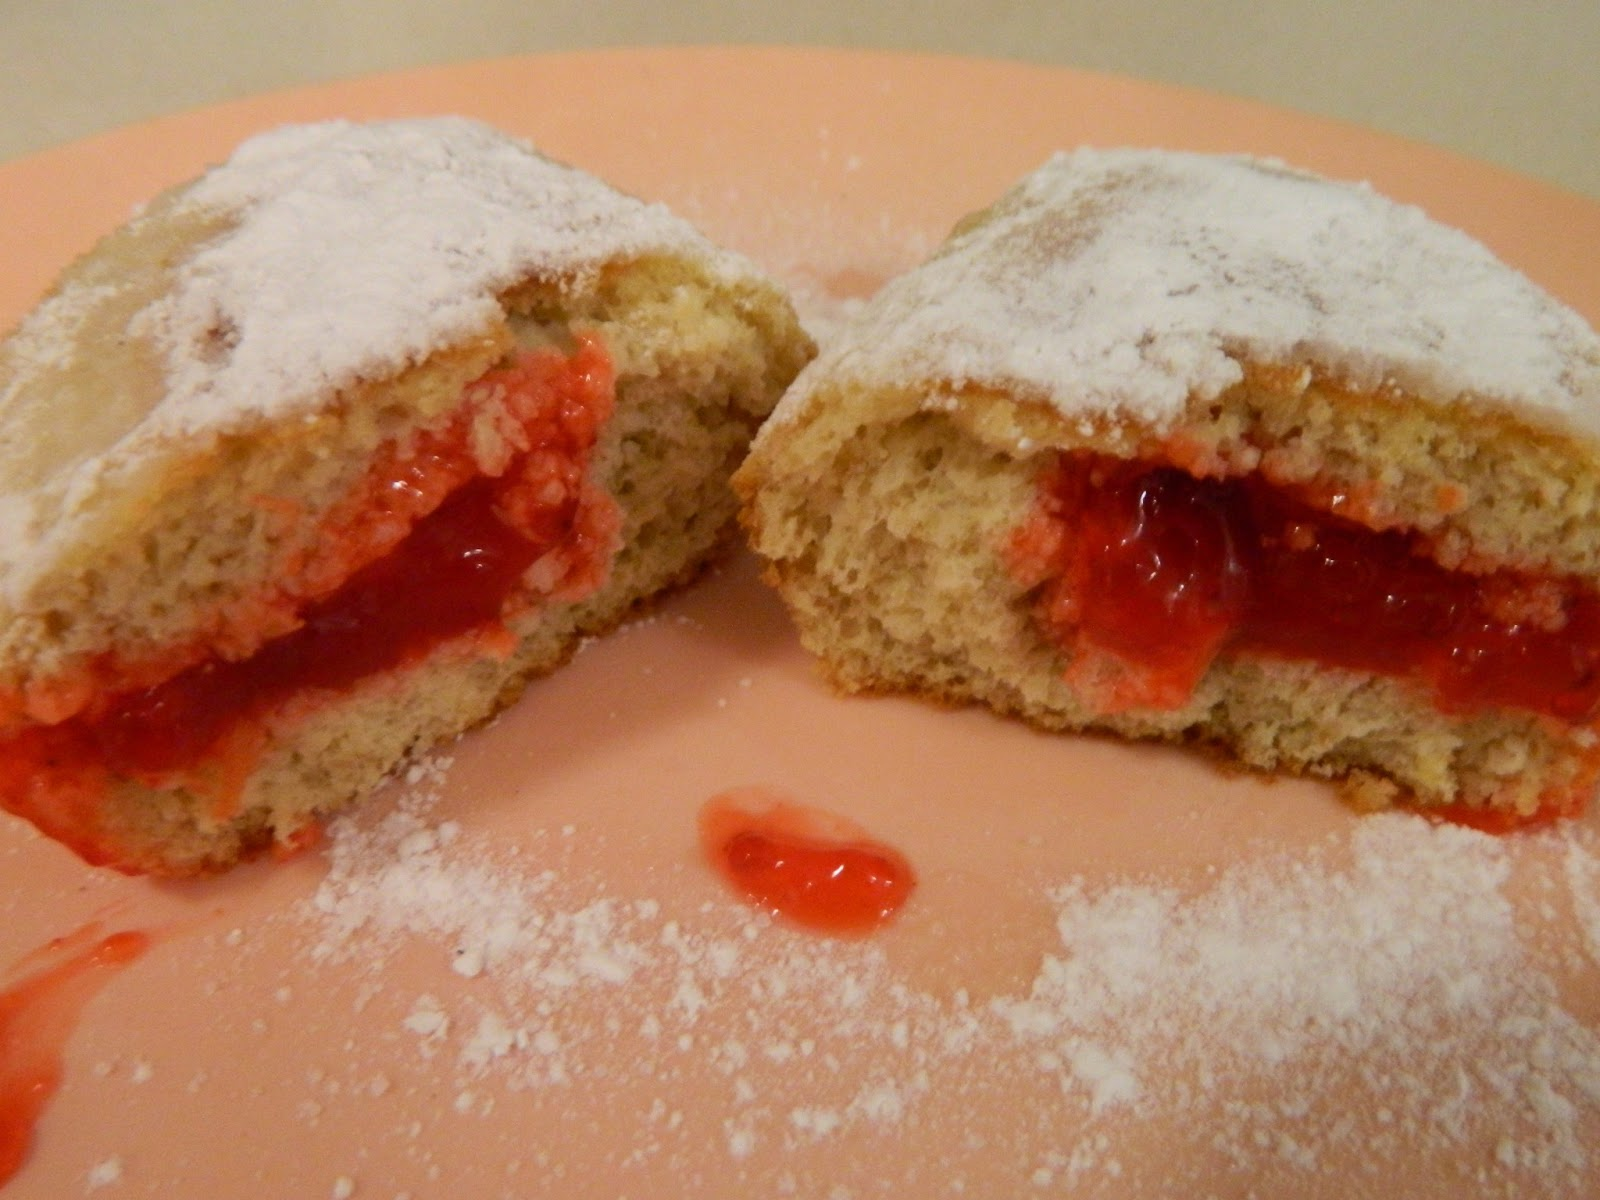 ... : JELLY-FILLED DONUTS, AND OTHER THINGS TO MAKE FROM A PANCAKE MIX